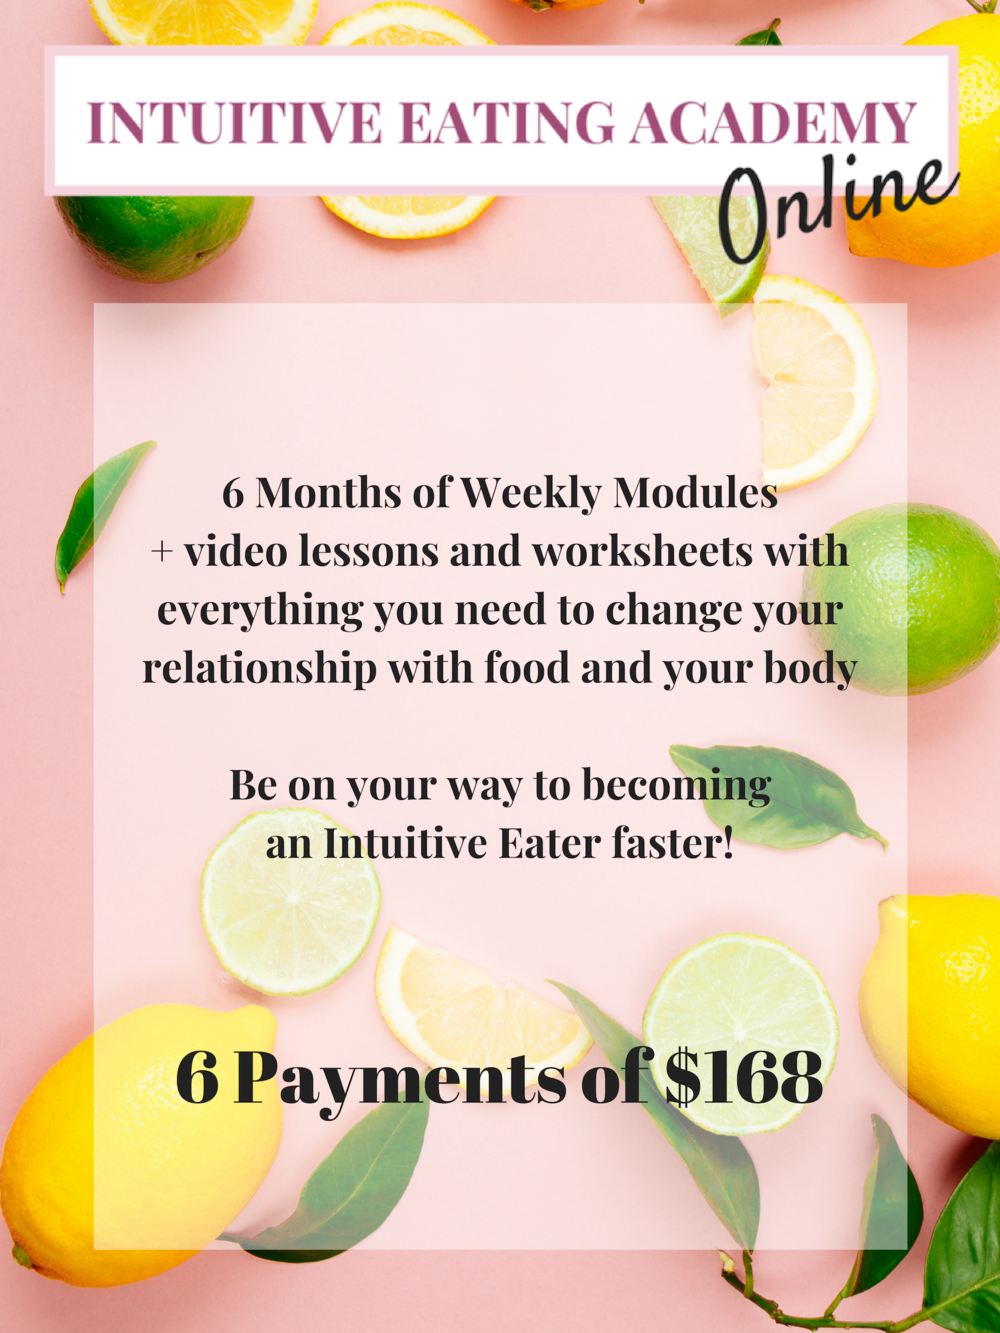 6 Months of Modules+ video lessons and worksheetsAccess to our private Facebook group+ community and supportBe on your way to becoming an Intuitive Eater faster!.png